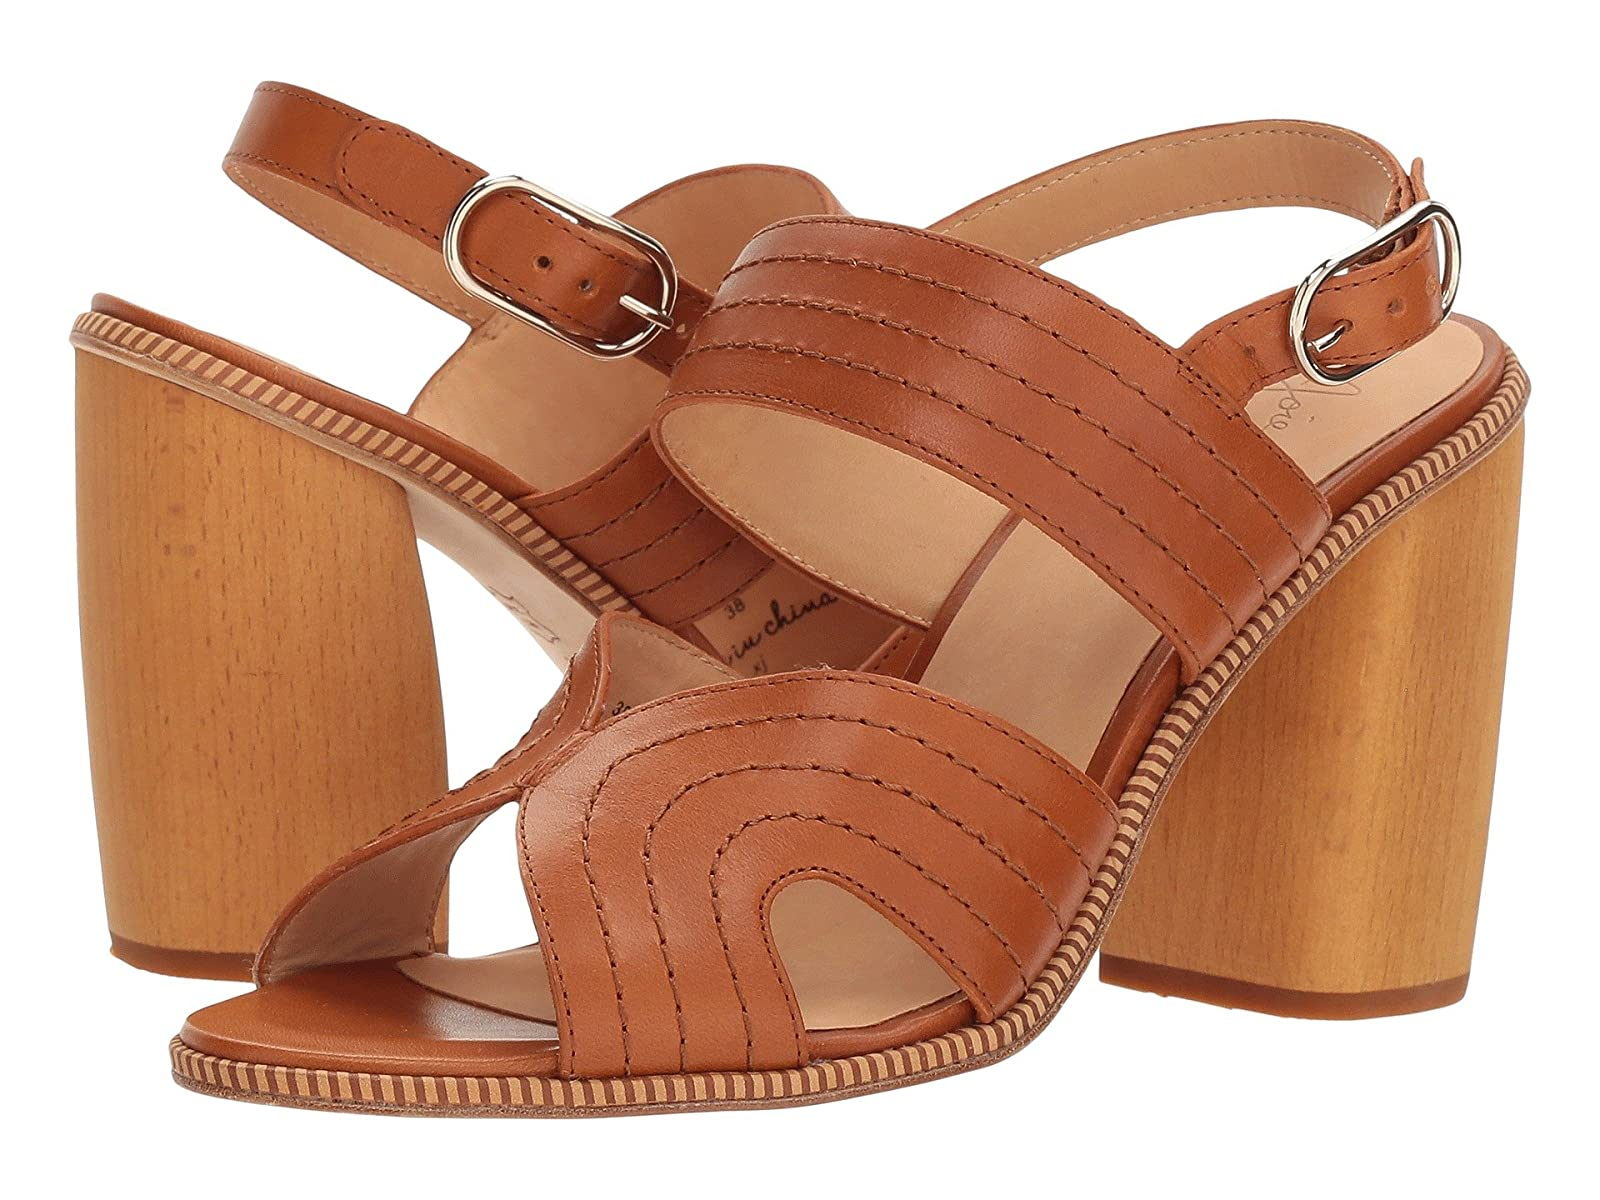 Joie AforleenCheap and distinctive eye-catching shoes